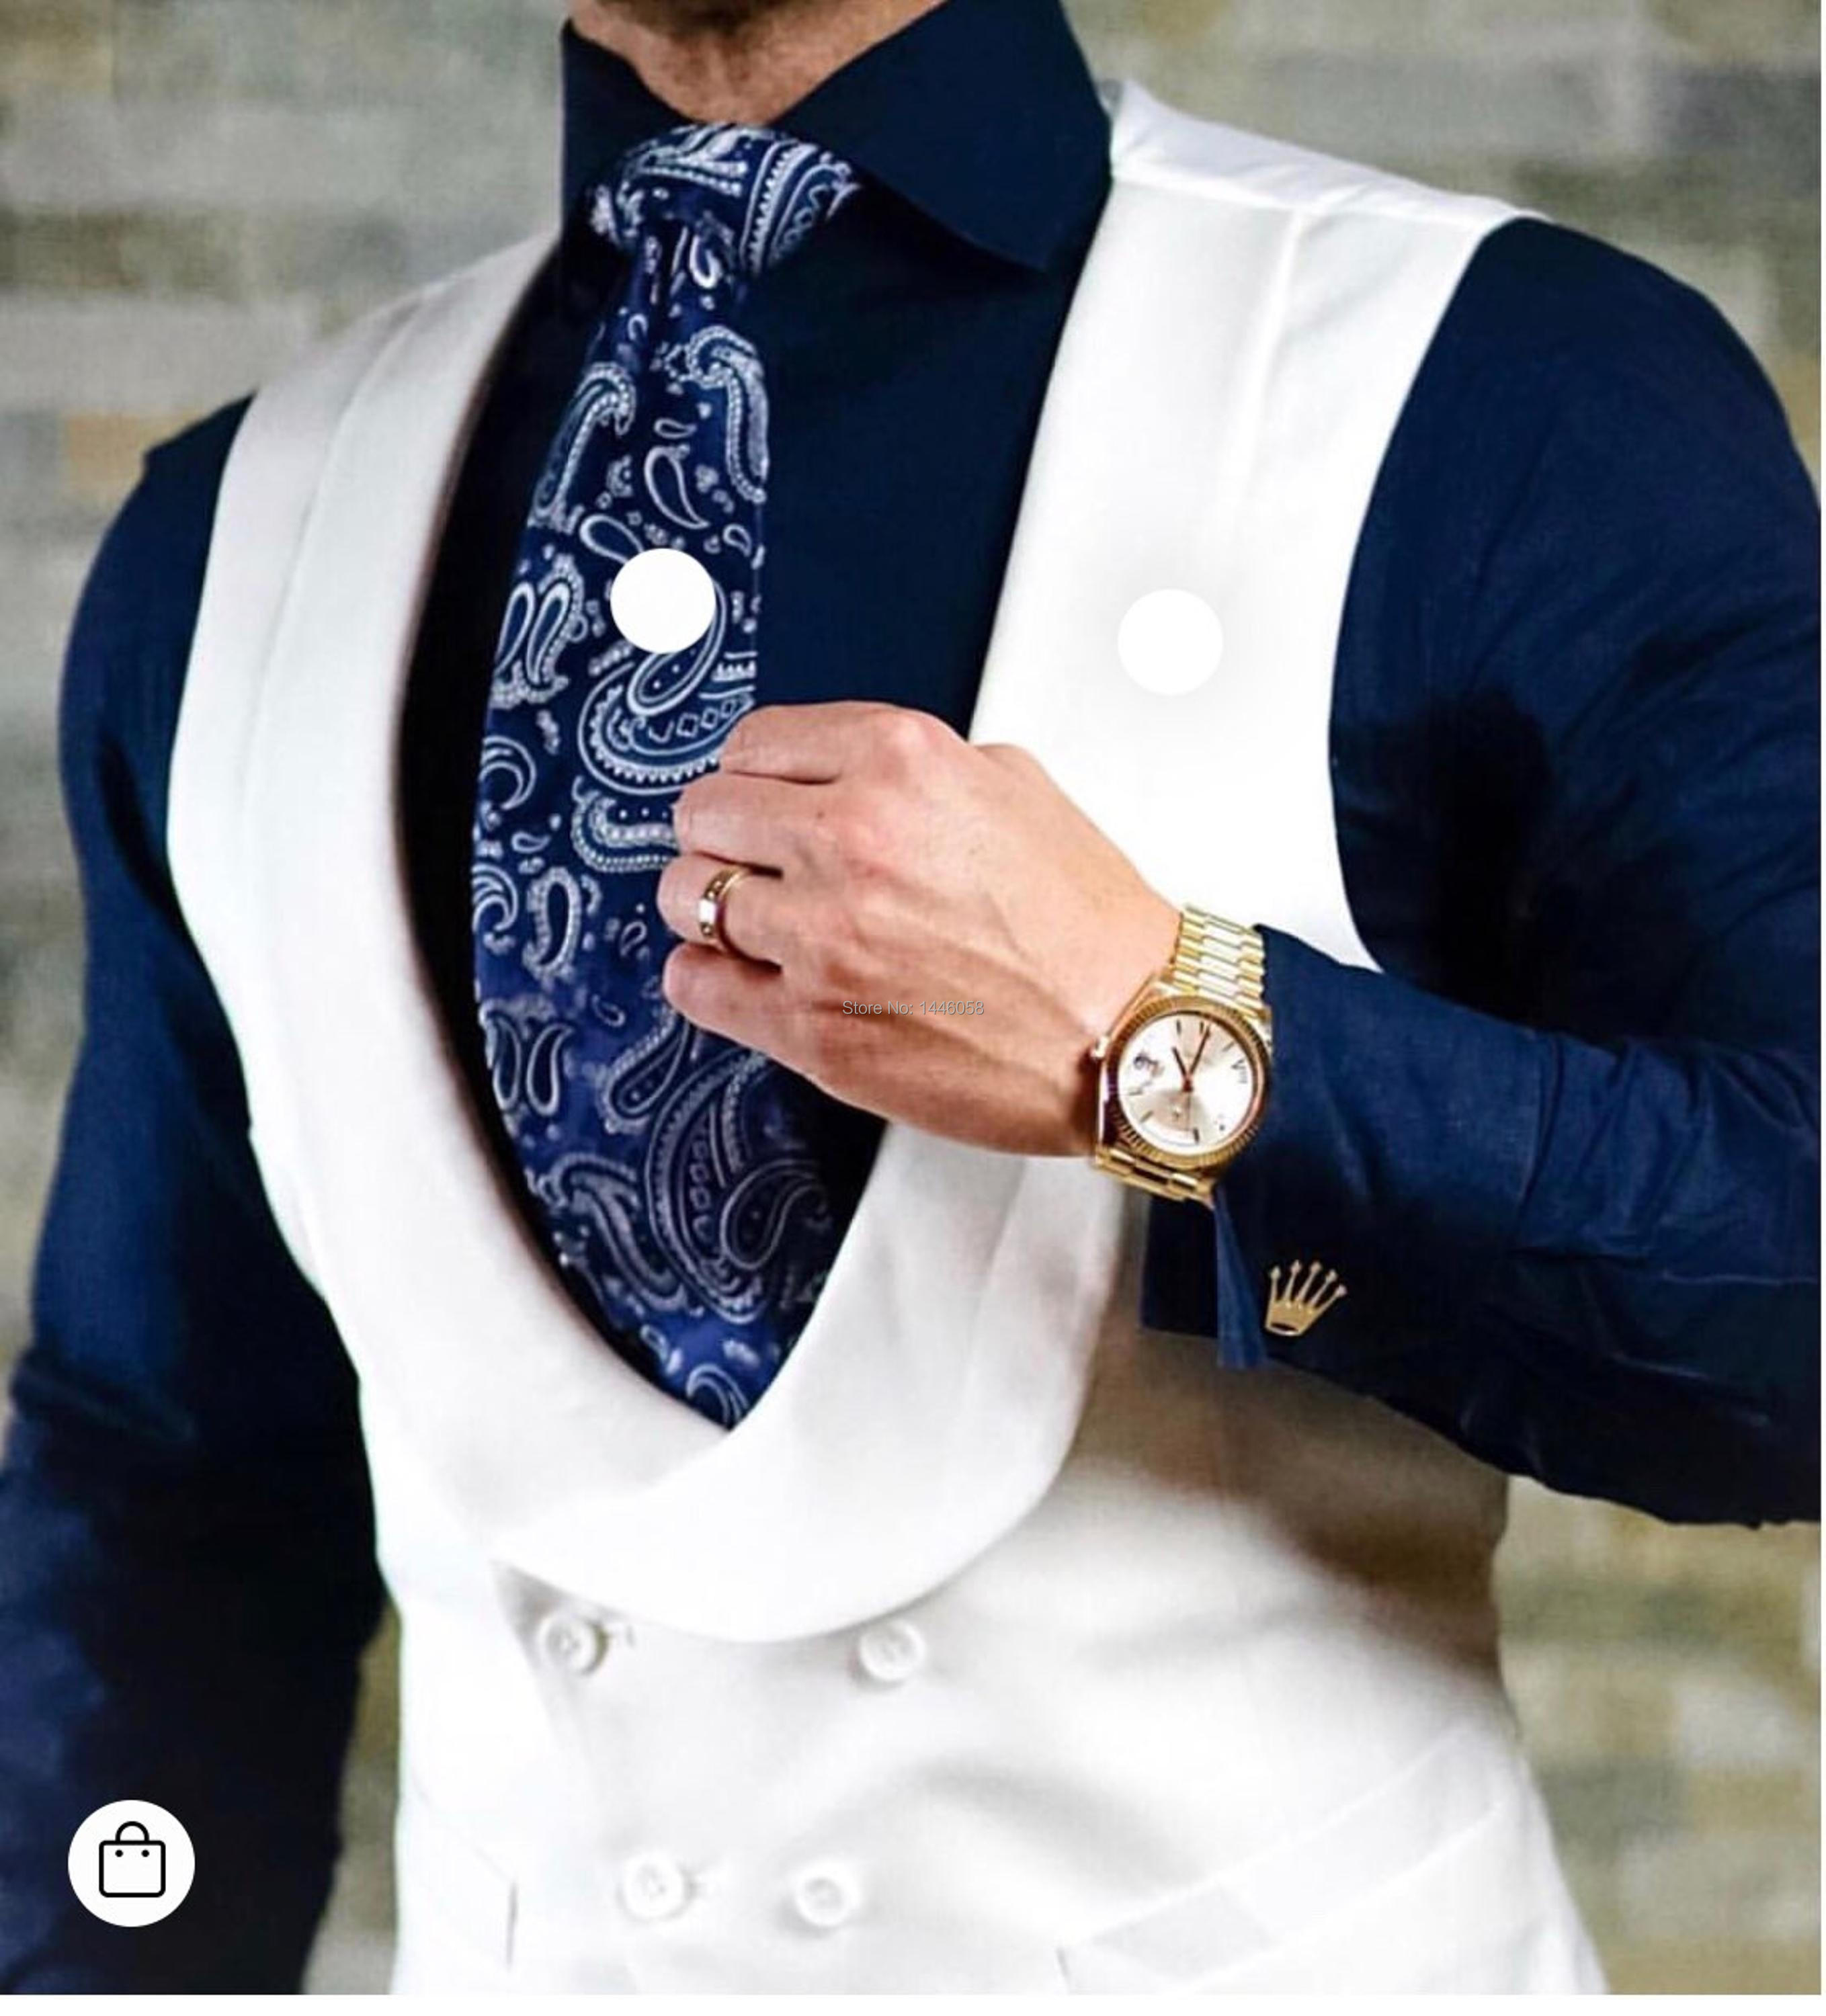 New Wedding Dress High Quality Goods Cotton Men S Fashion Design Suit Vest Black White Party Men S Business Casual Suit Vest Suits Aliexpress